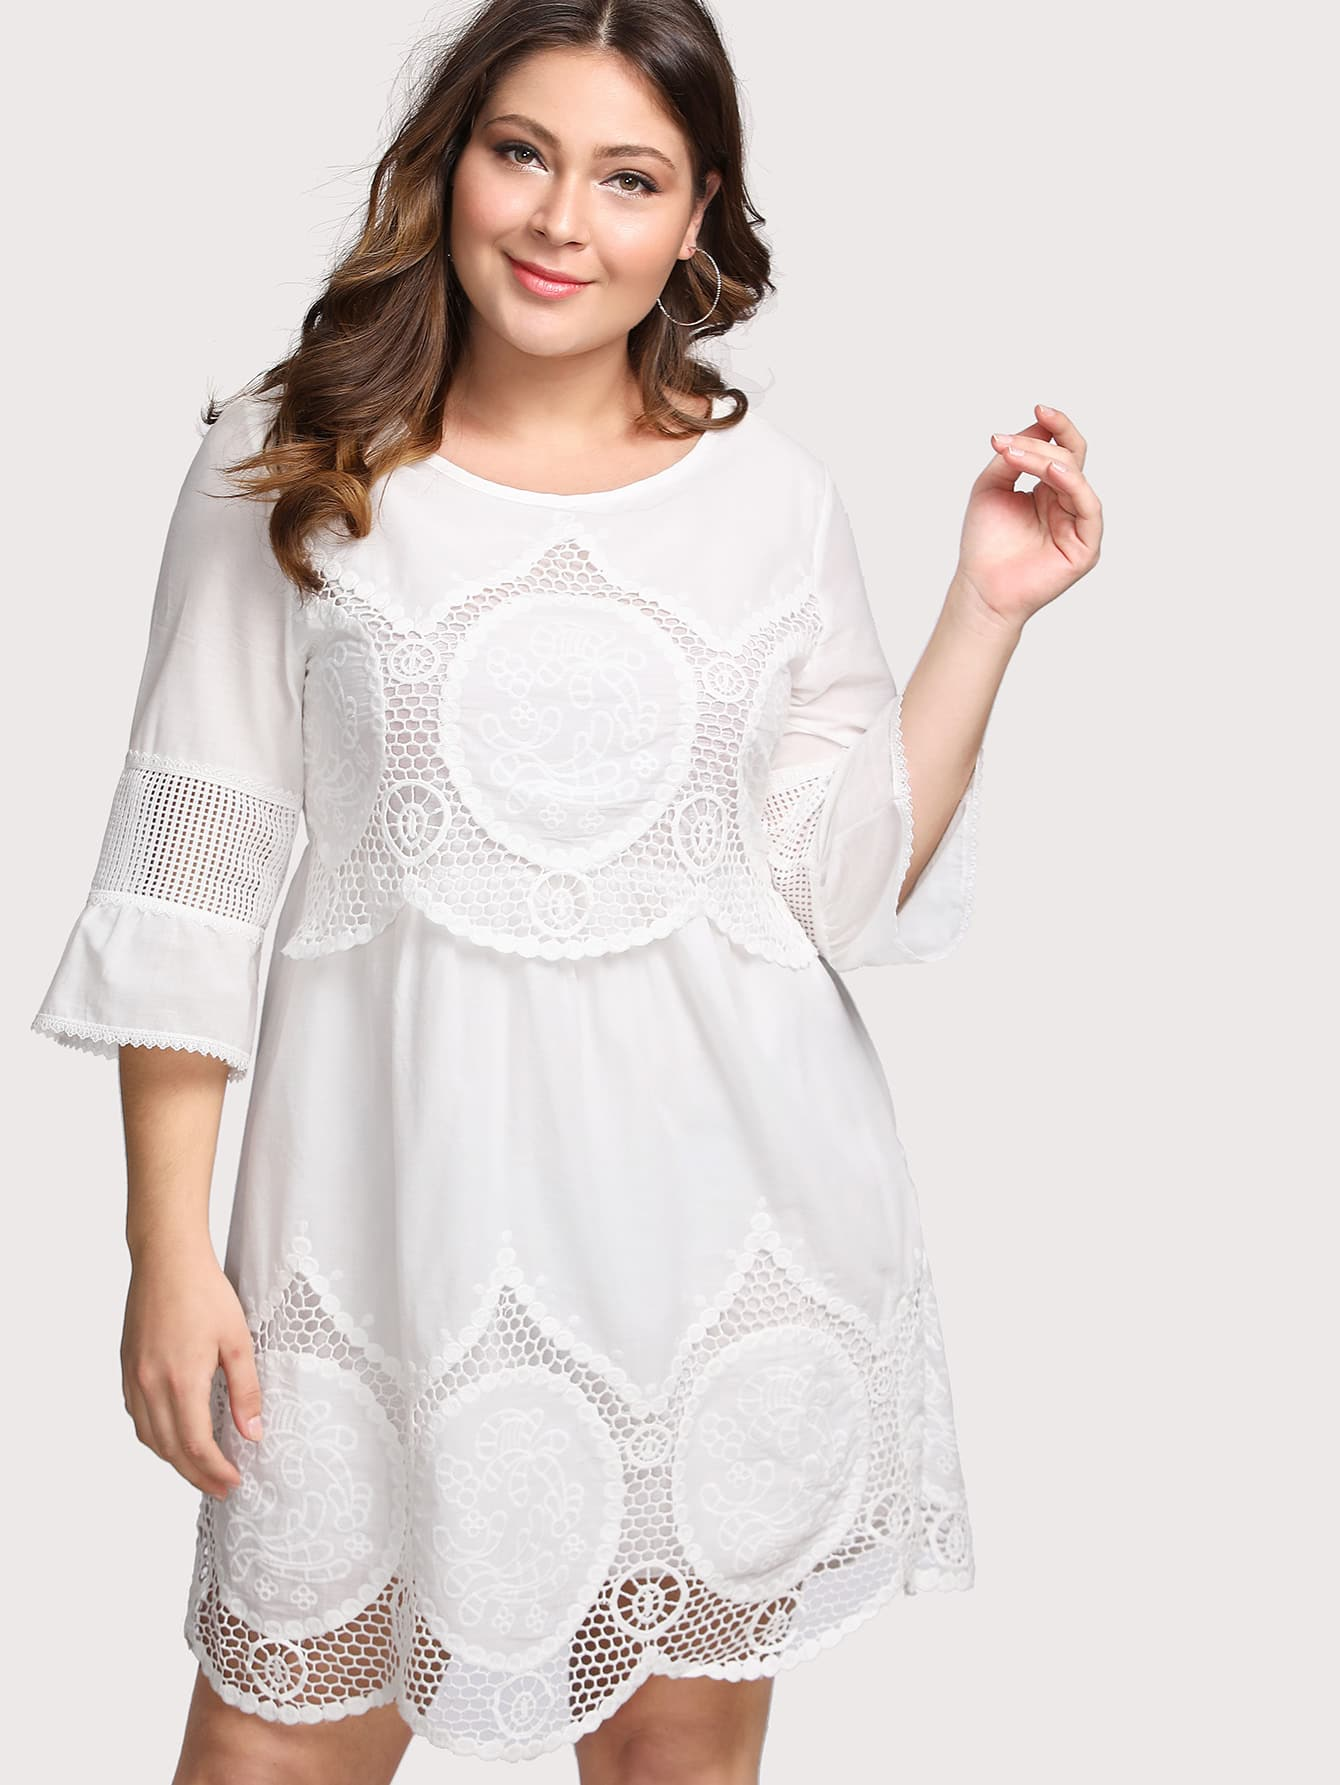 Hollow Out Crochet Panel Dress hollow out embroidery panel dress